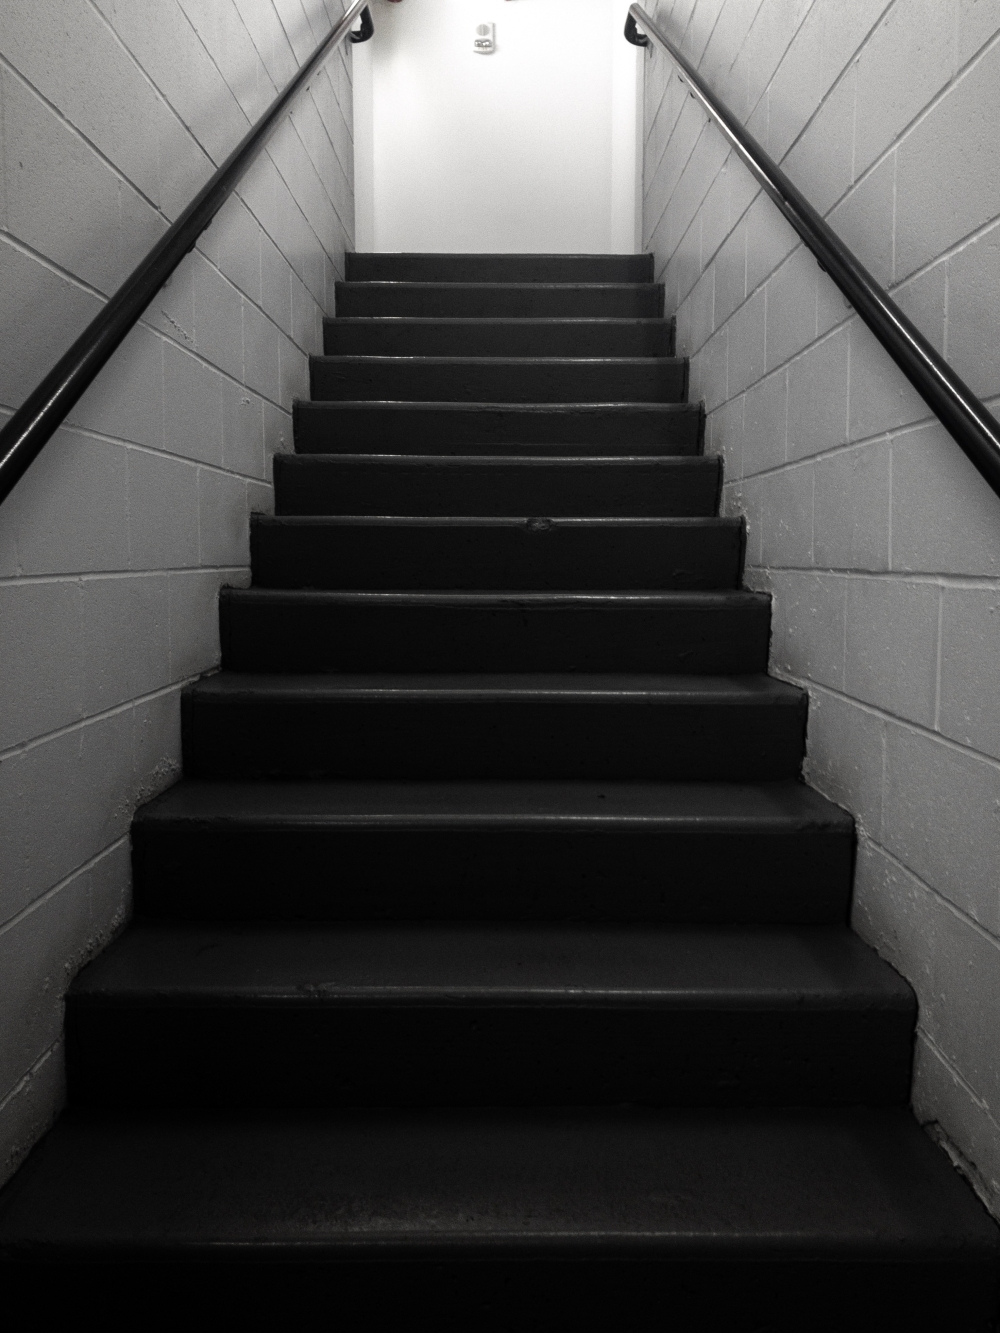 350 Staircase Pictures Download Free Images On Unsplash   Black And White Stairs Design   Farmhouse   Photography   Concept   Disappearing   Grey Background